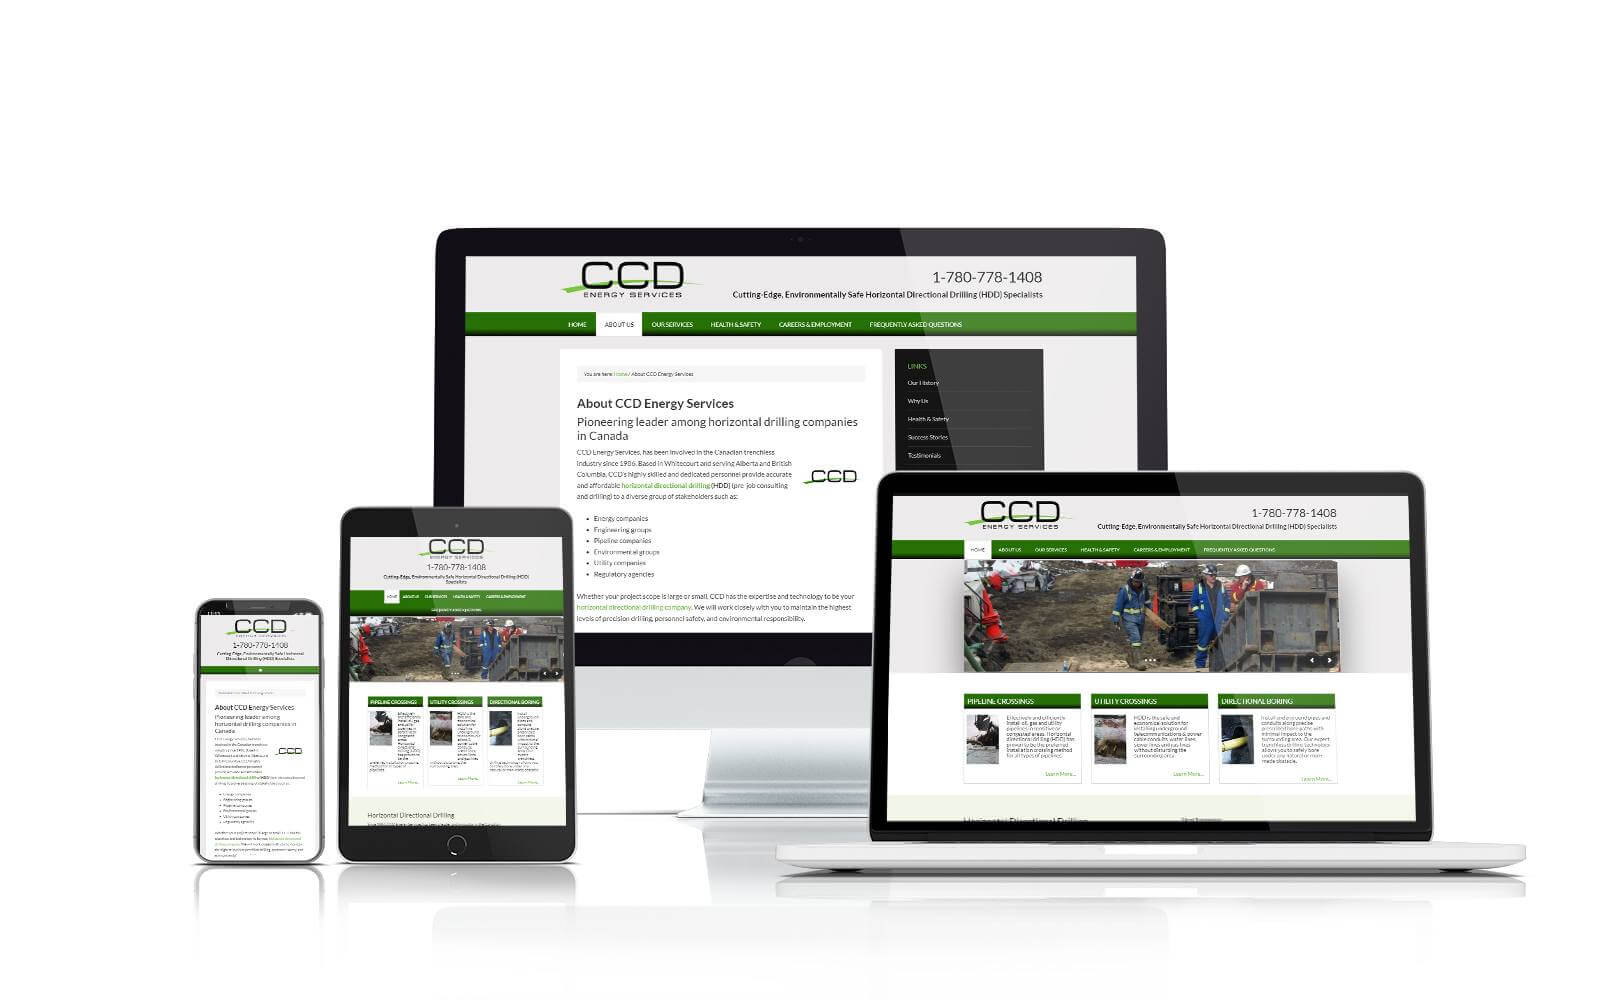 CCD Energy Services website